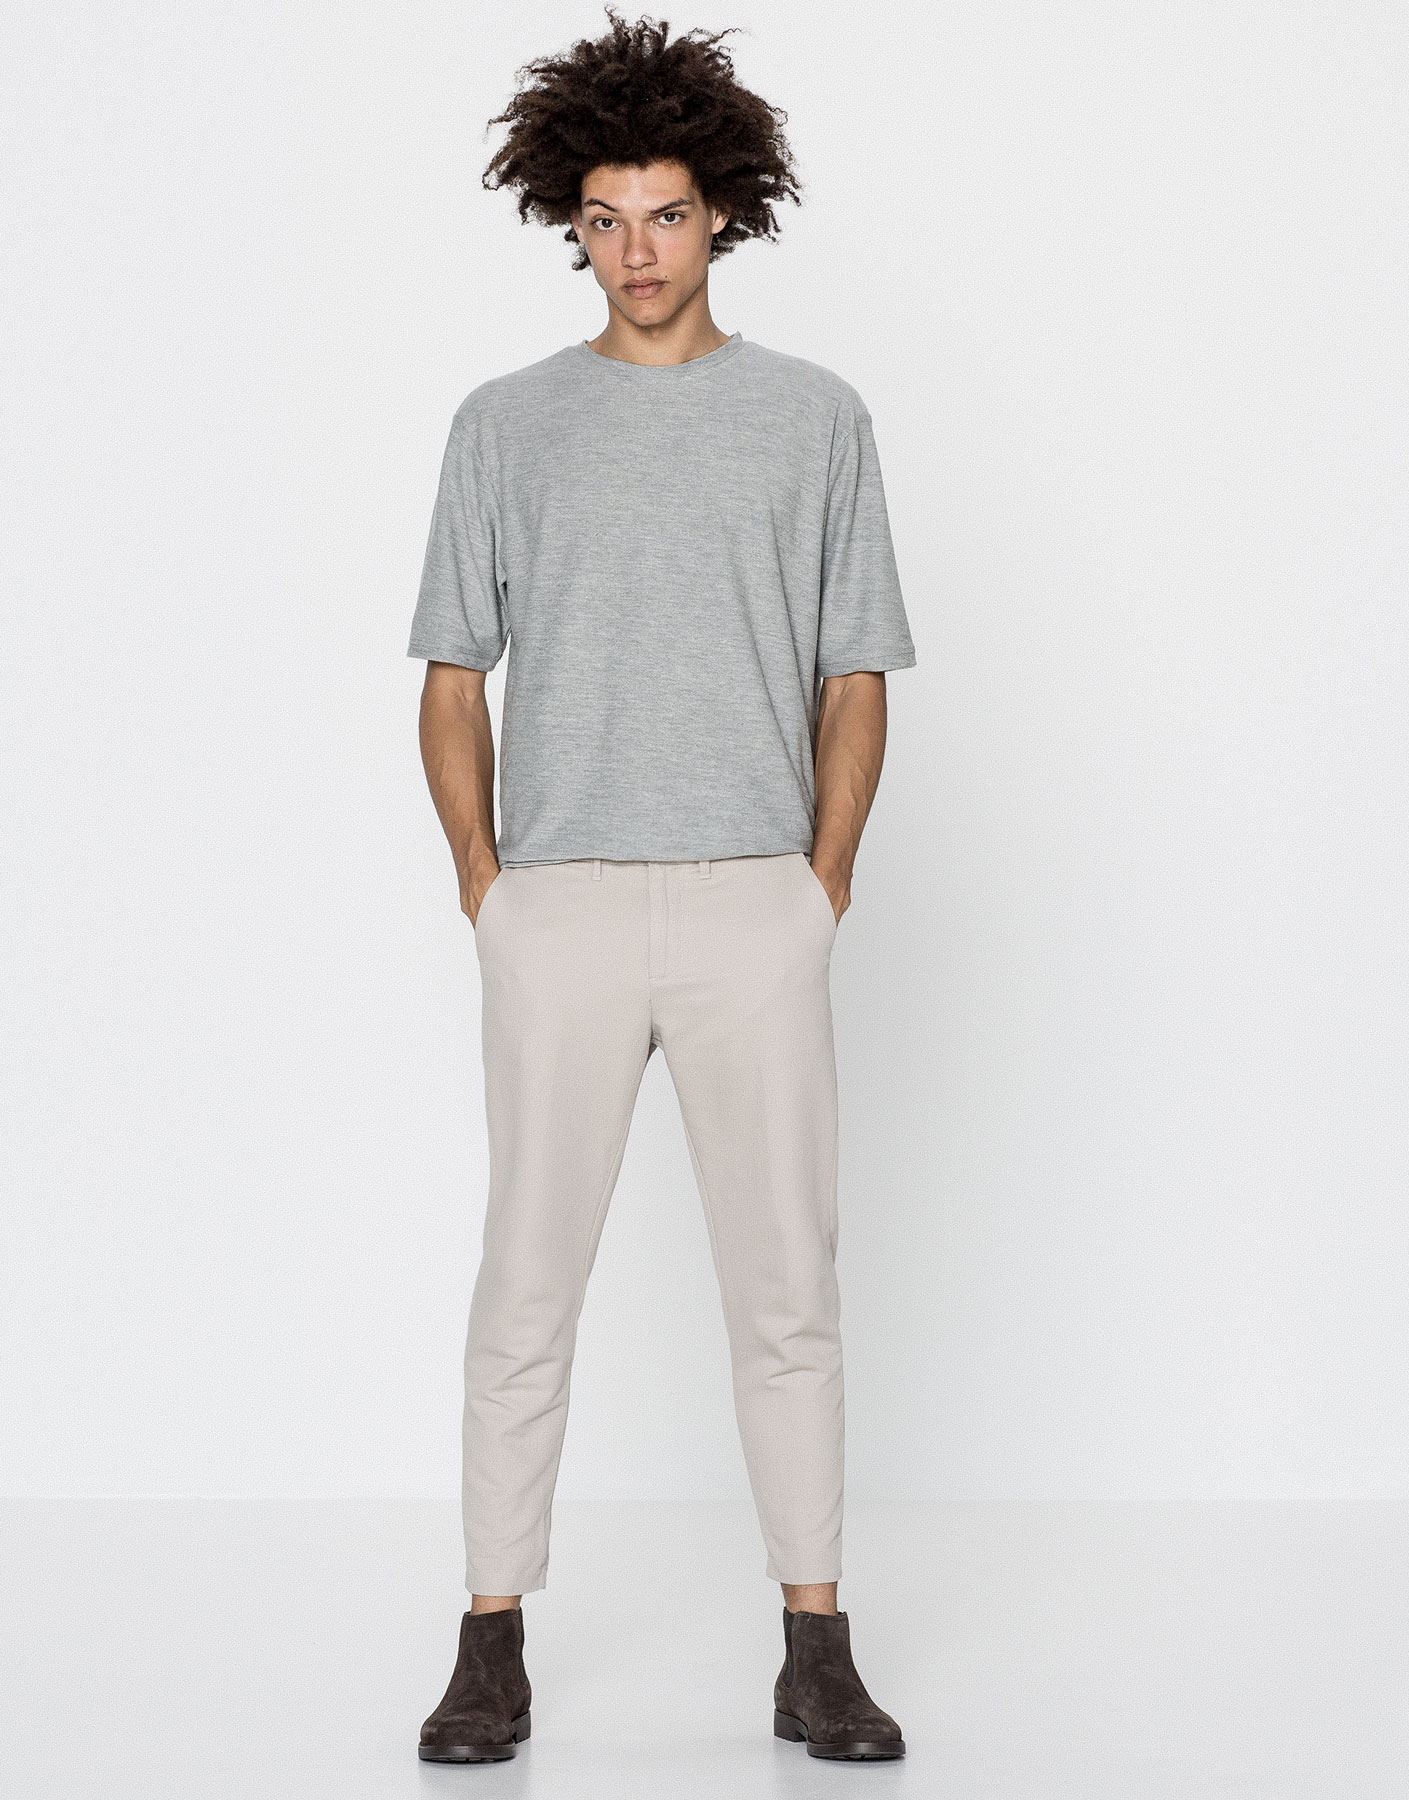 Textured weave chino-style trousers